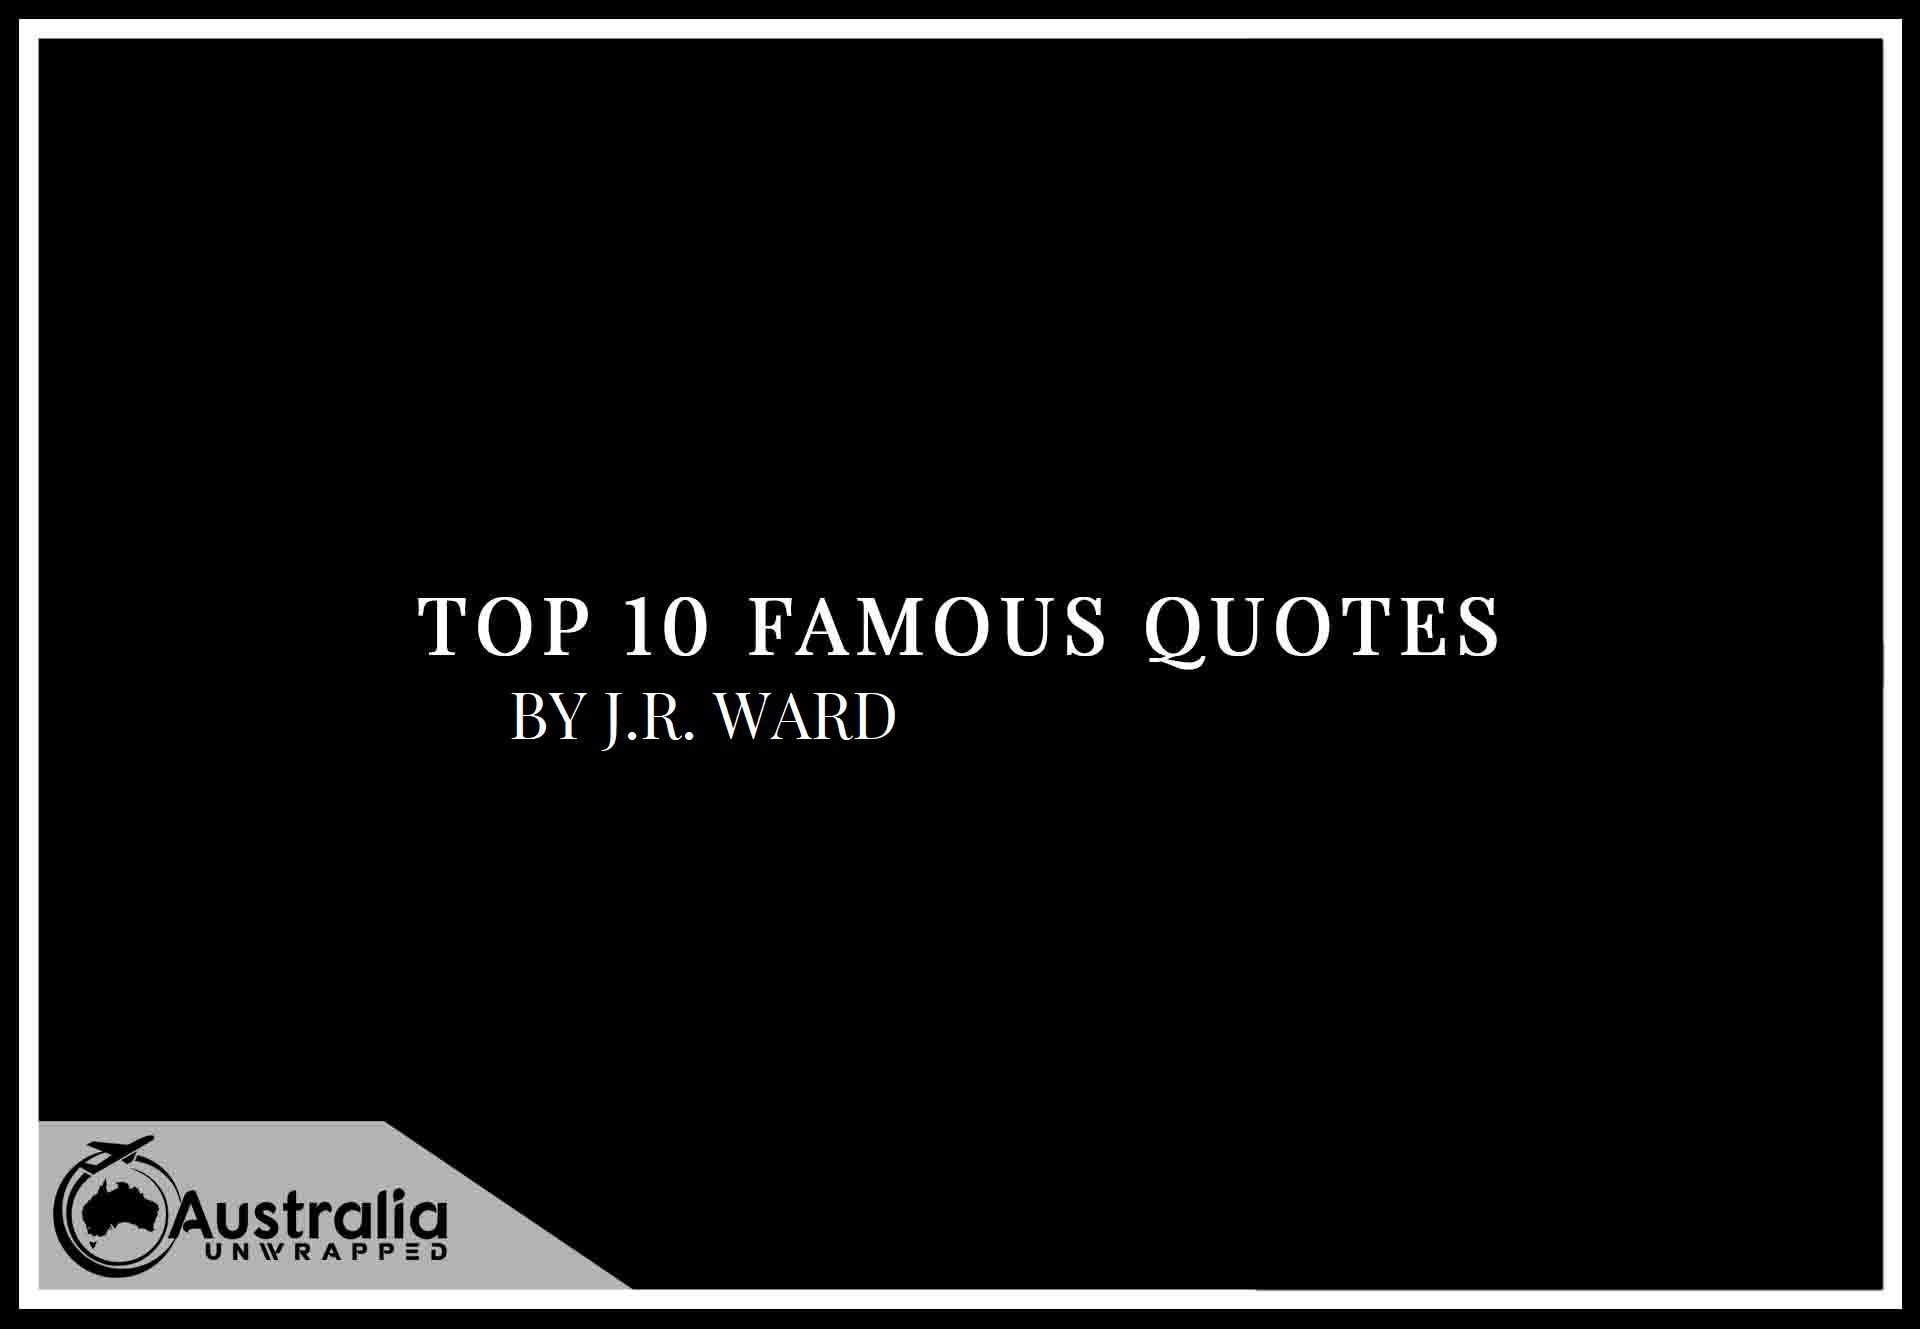 Top 10 Famous Quotes by Author J.R. Ward